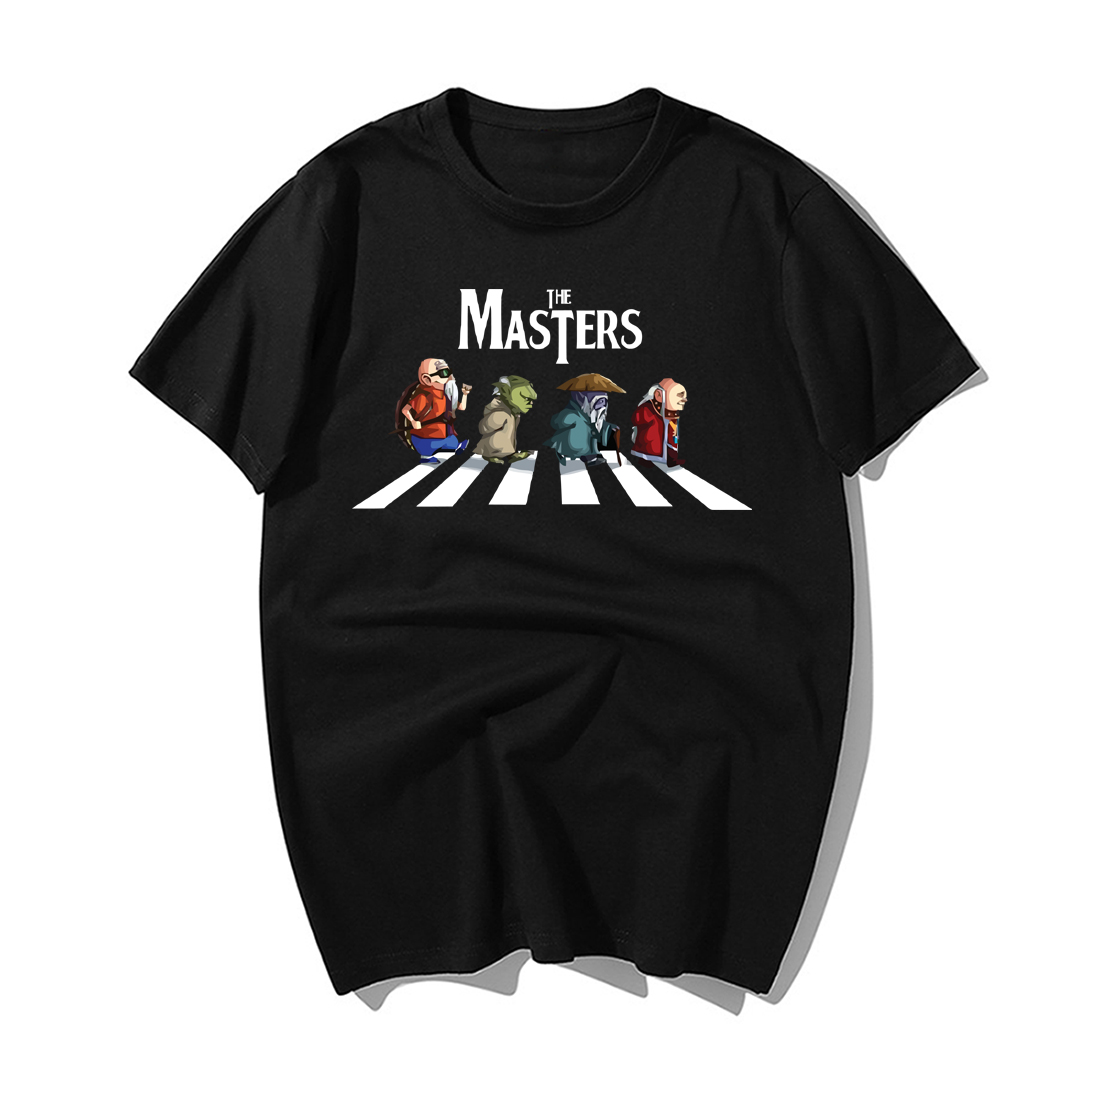 Funny Anime Shirt The Masters Walking Across Fashion Print Tshirt Men Summer Casual High Quality Cotton Short Sleeve Tops Tees